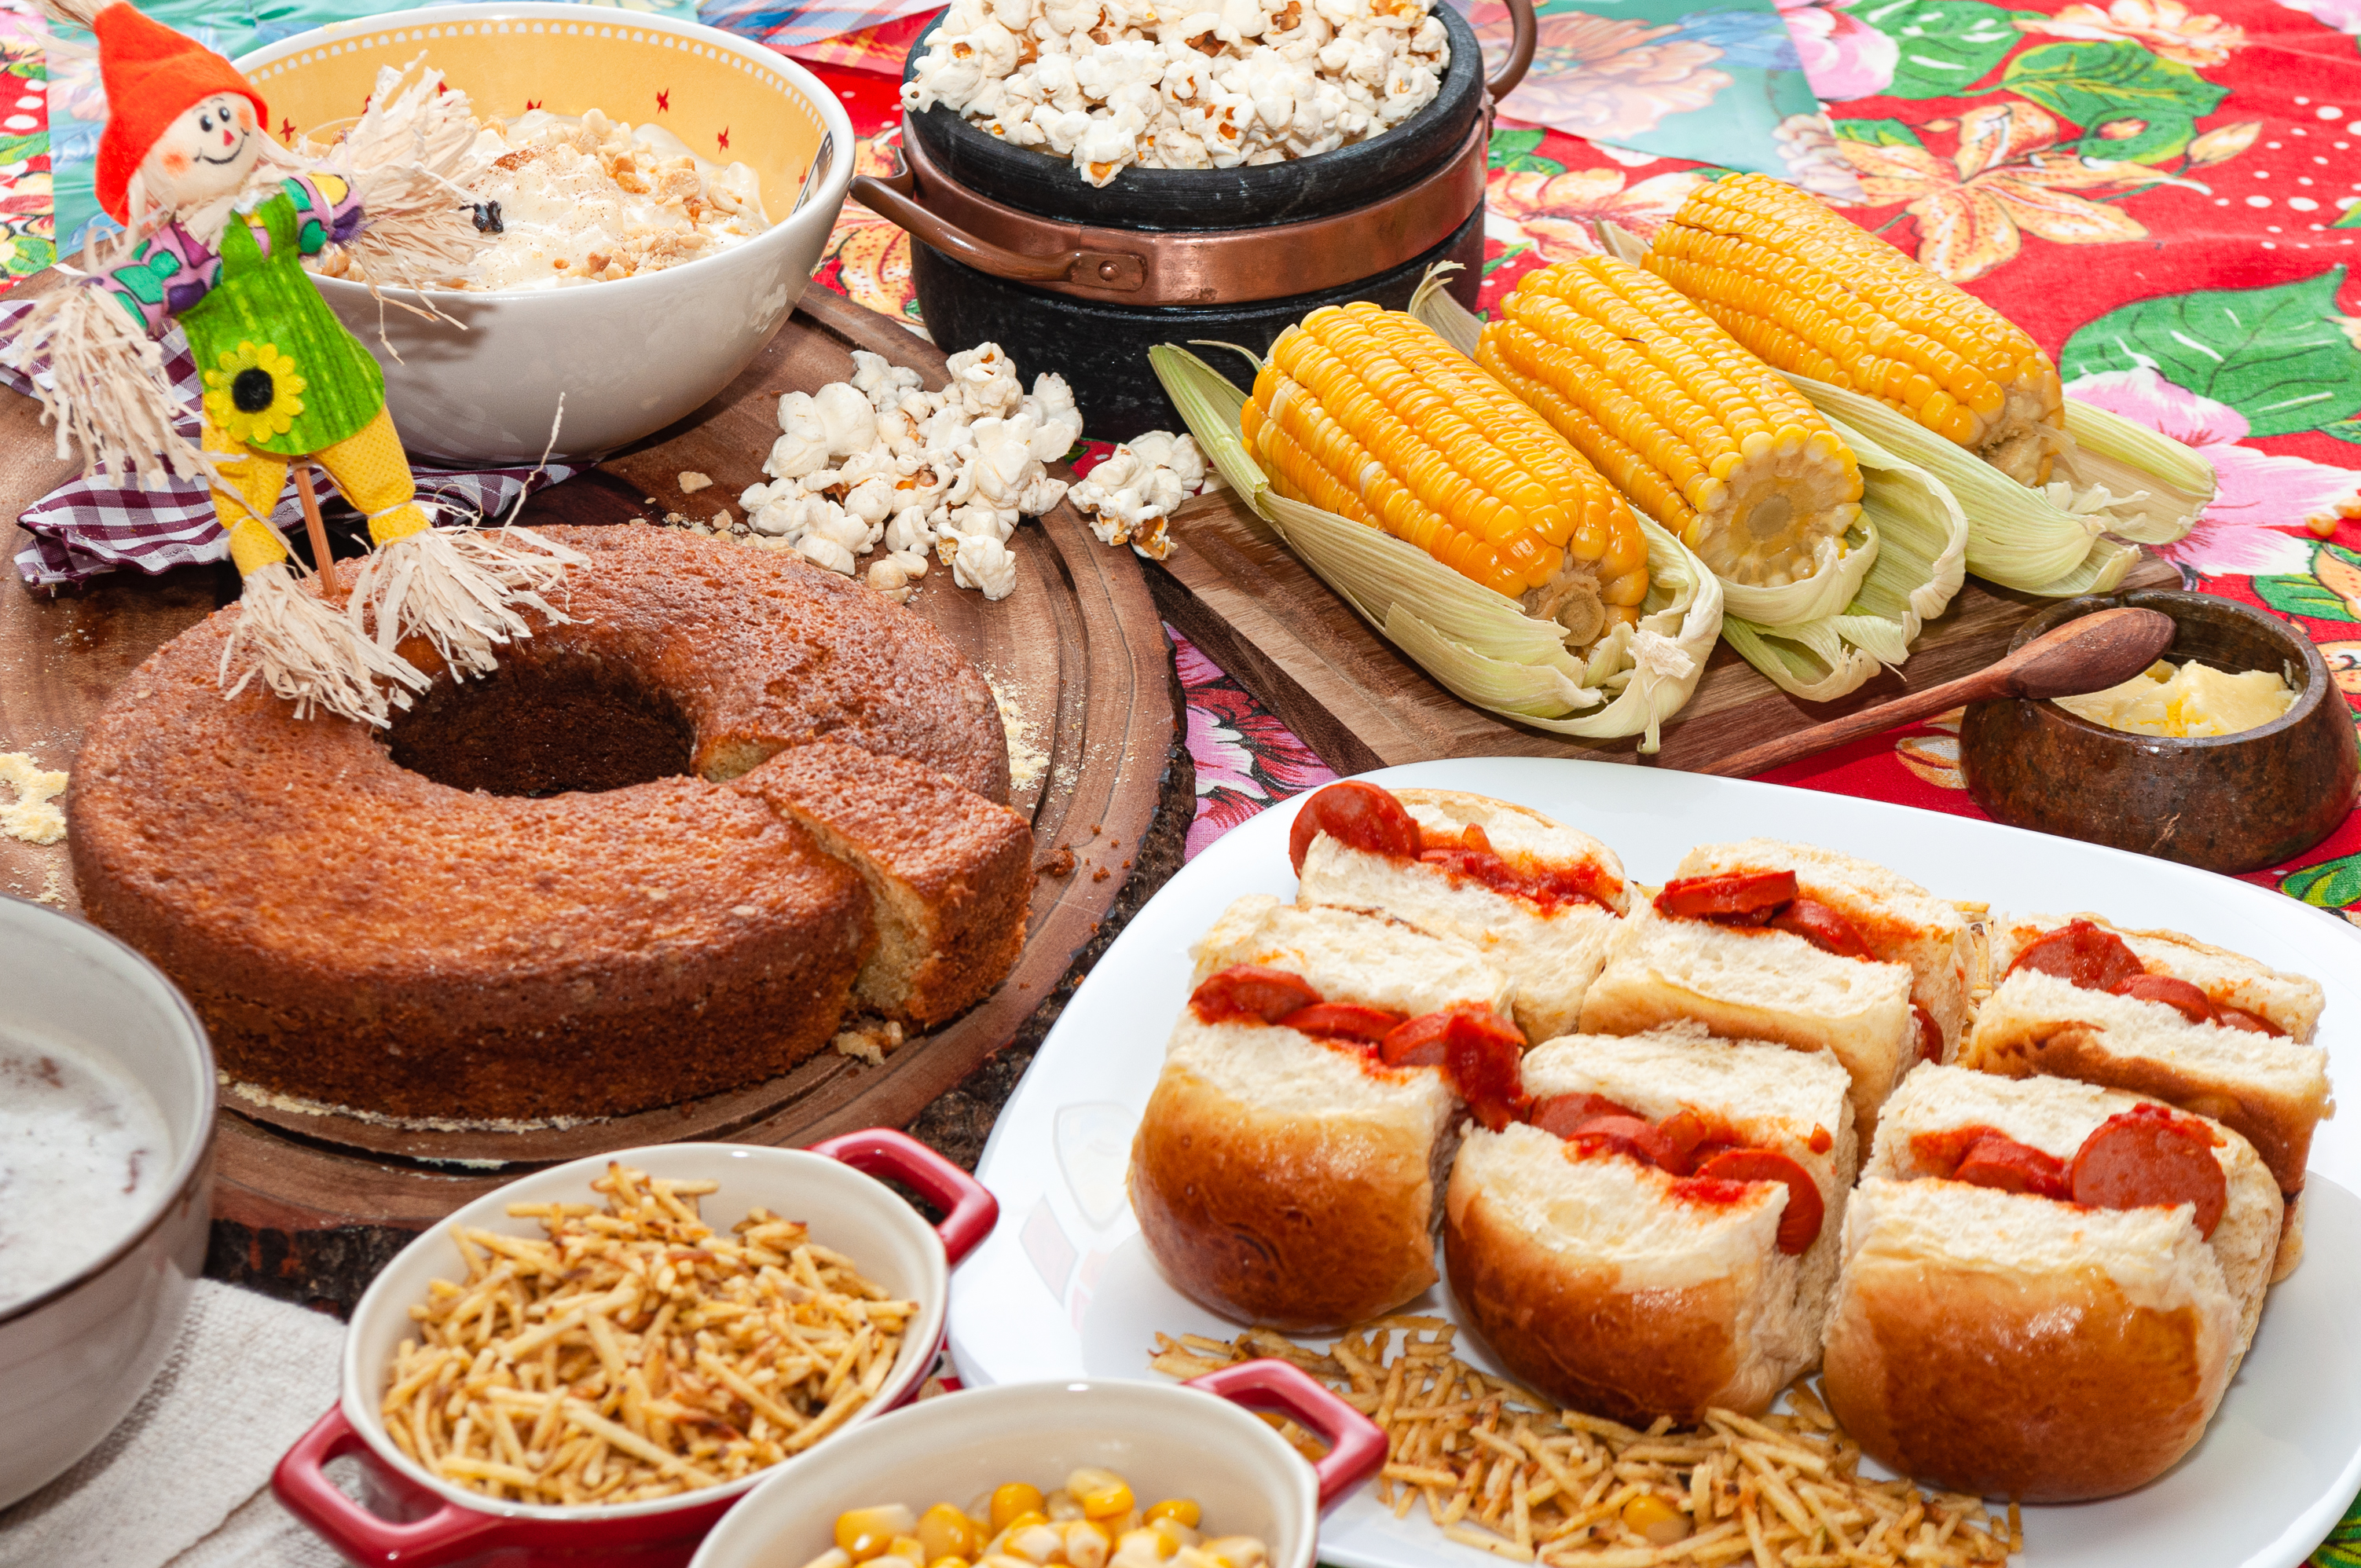 decorated table with typical brazilian food, often served at 'june parties'